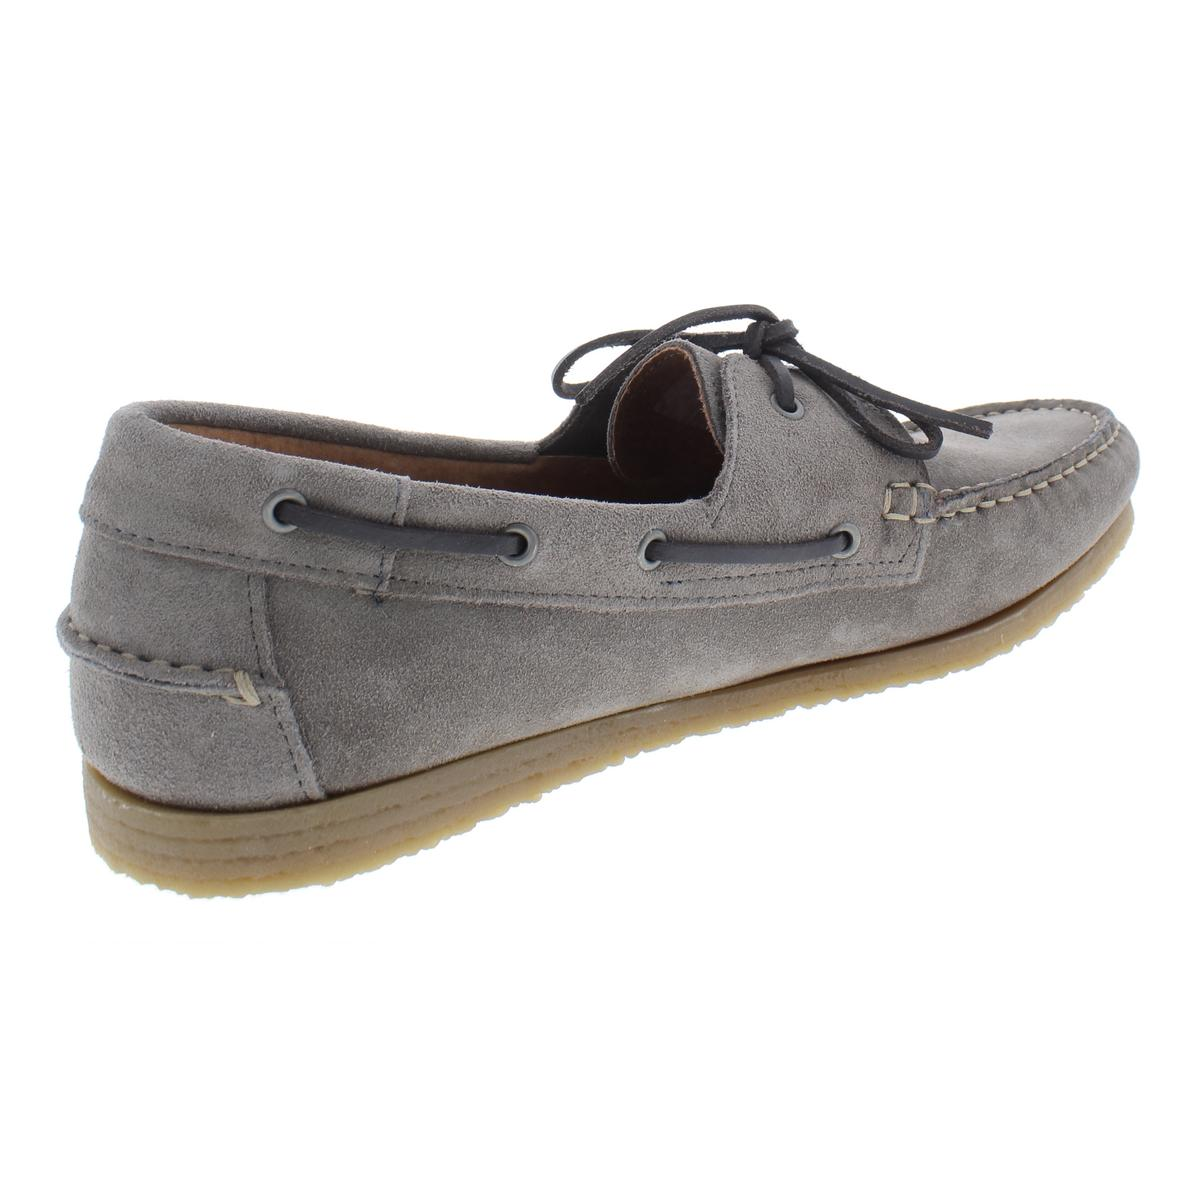 Steve-Madden-Mens-Buoy-Solid-Loafer-Slip-On-Boat-Shoes-BHFO-9944 thumbnail 8